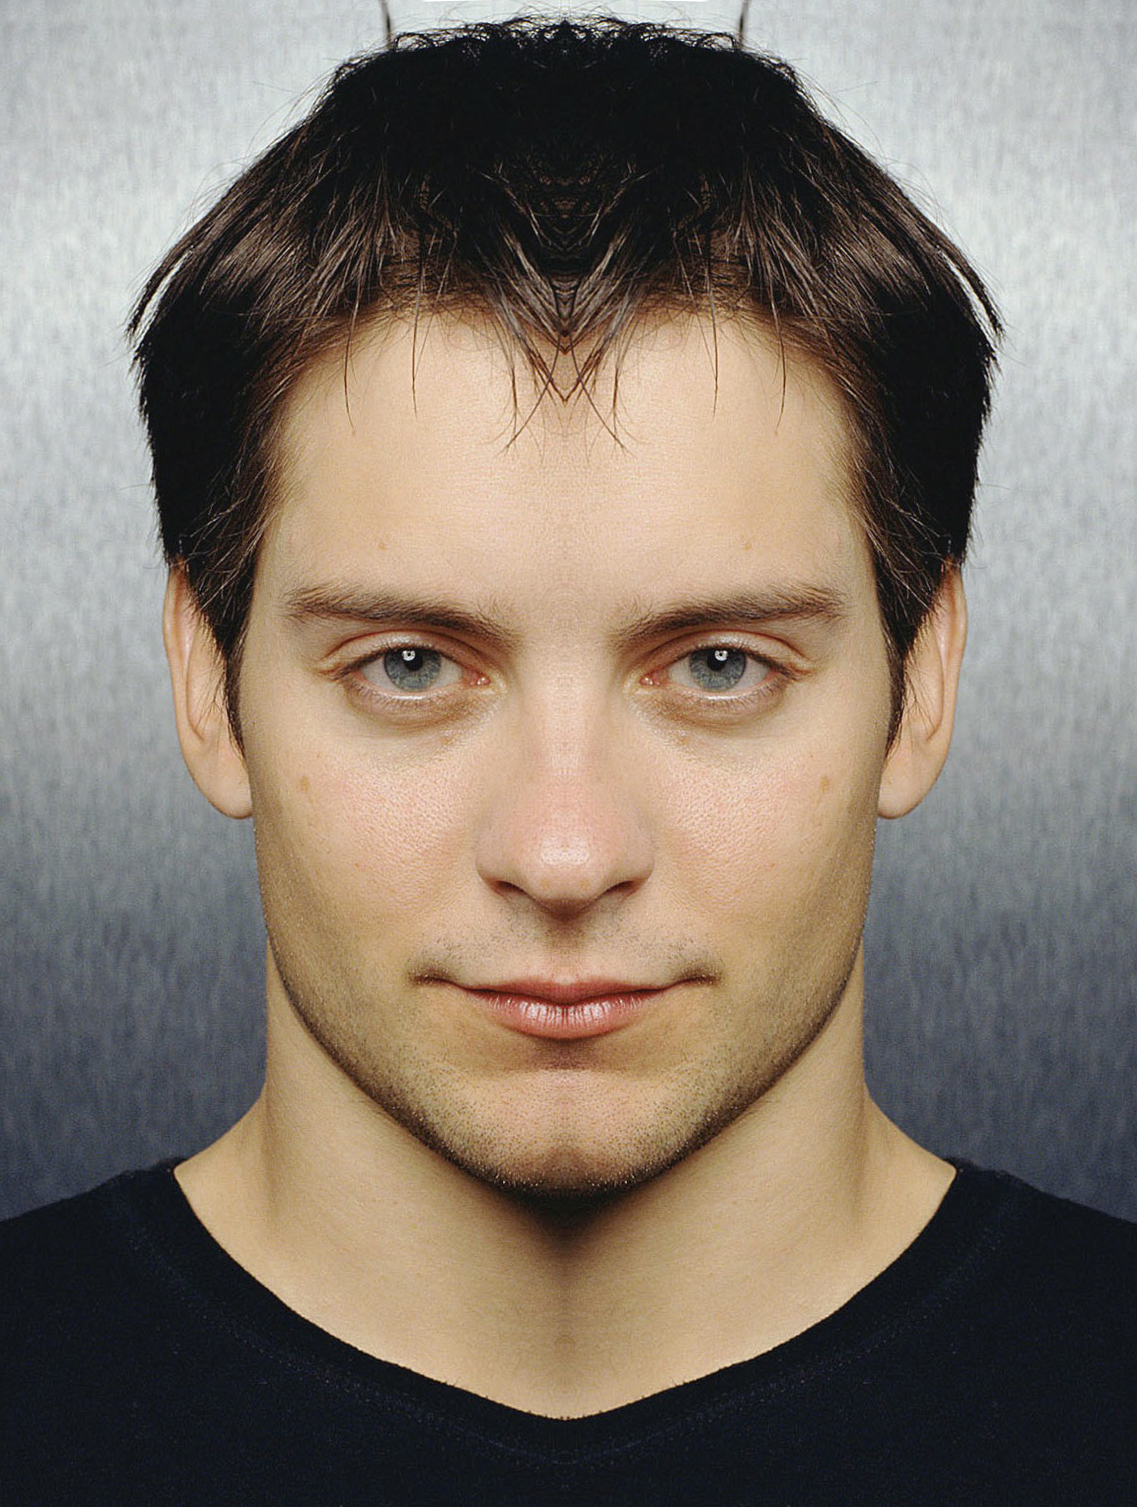 Tobey Maguire Spiderman Face